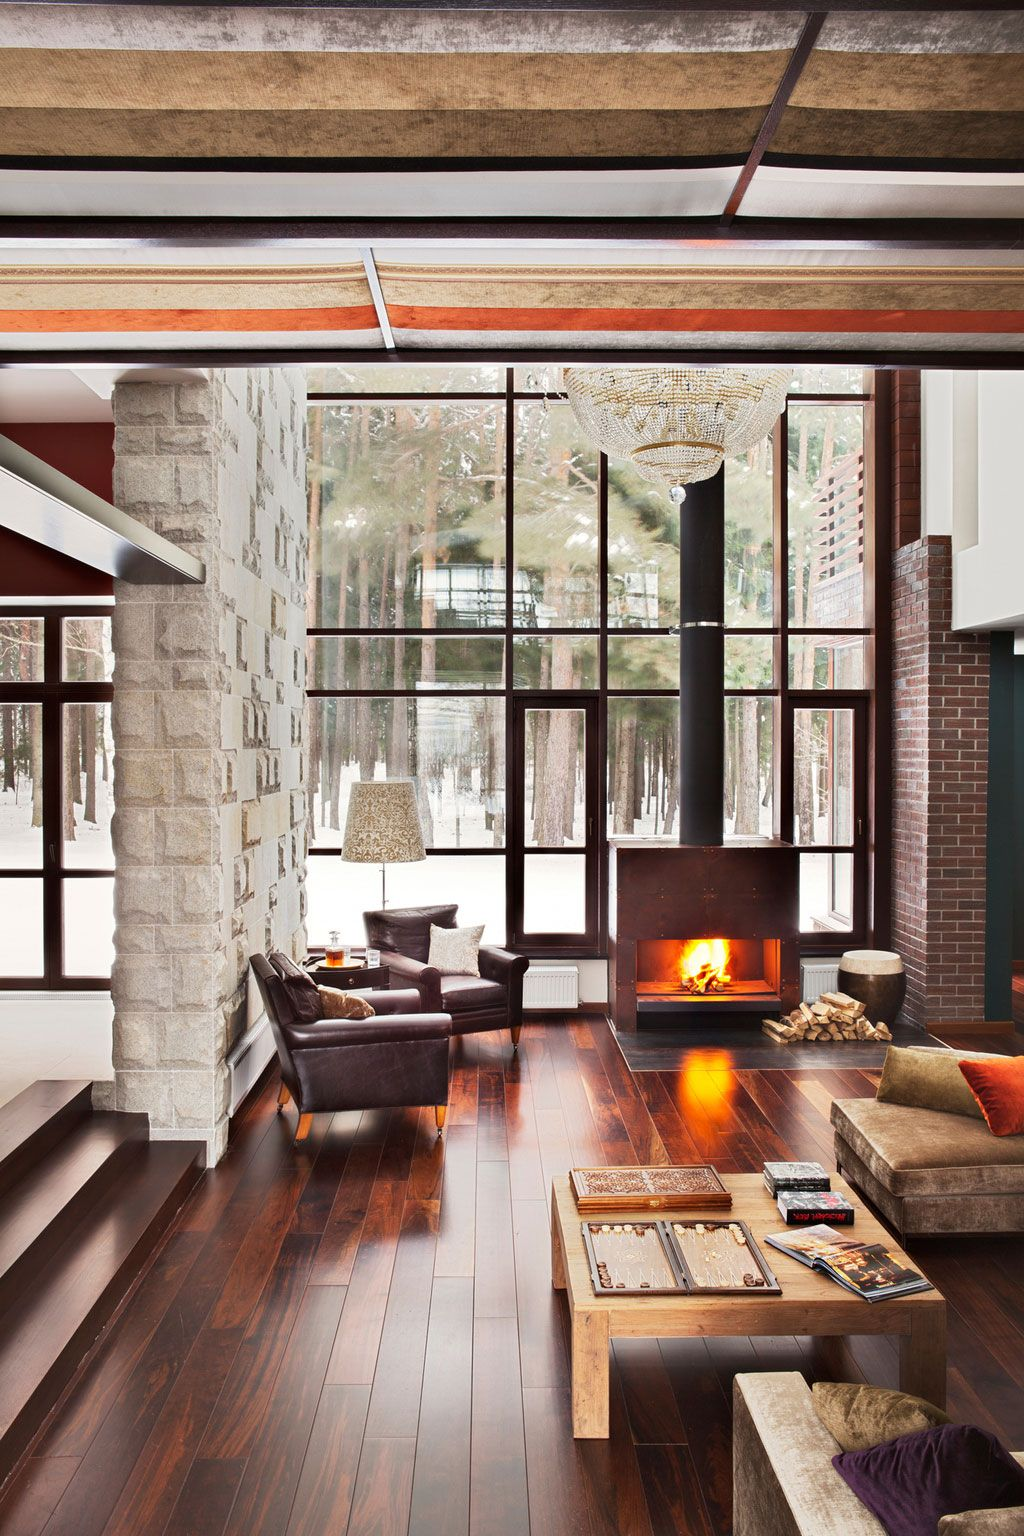 Living Room Small Cozy Homes 1000 images about modern home design ideas on pinterest international style cottage and river house